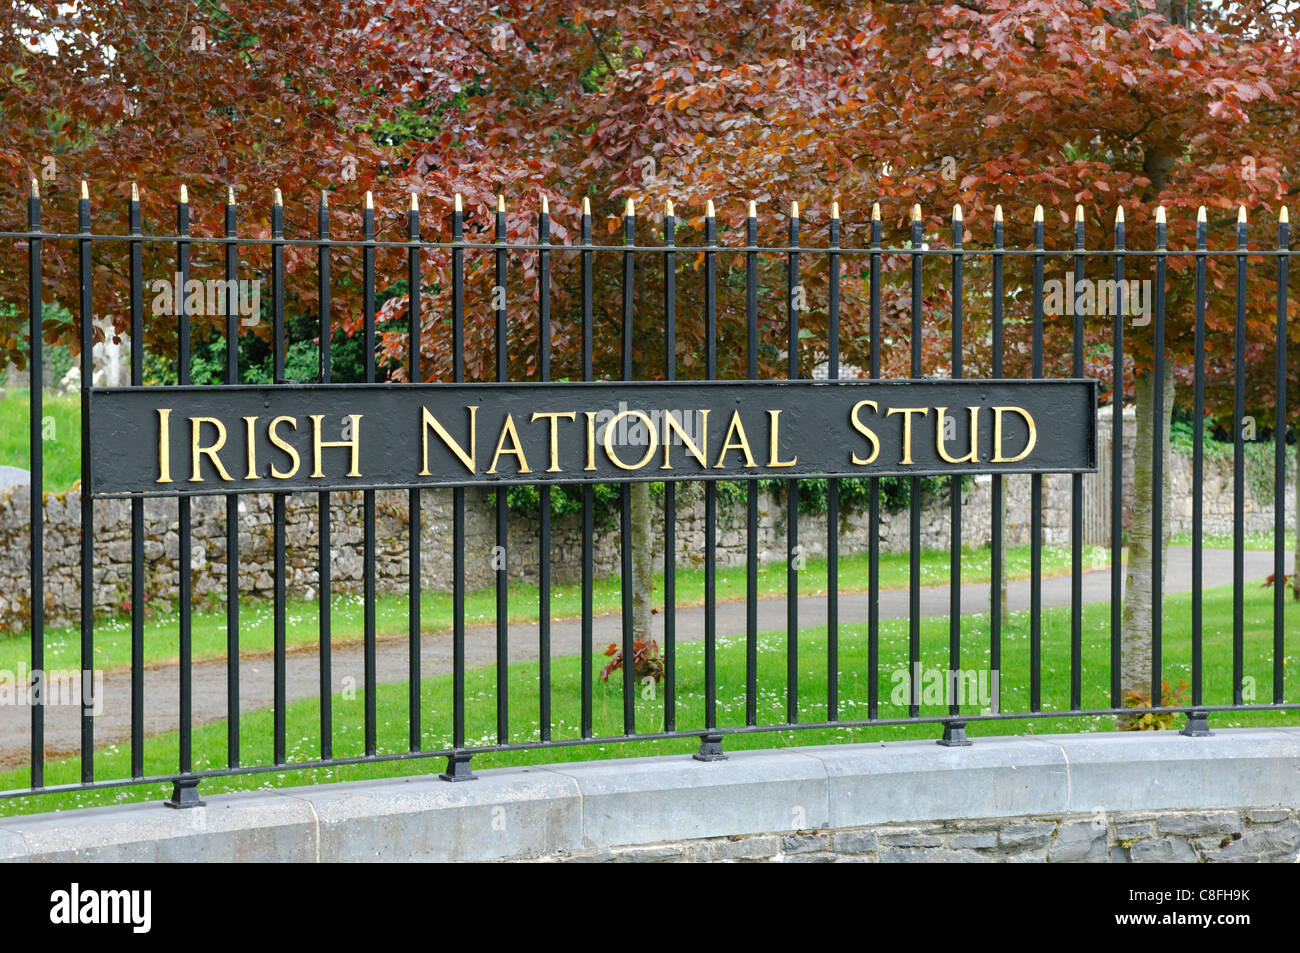 Gate to the Irish National Stud - Stock Image